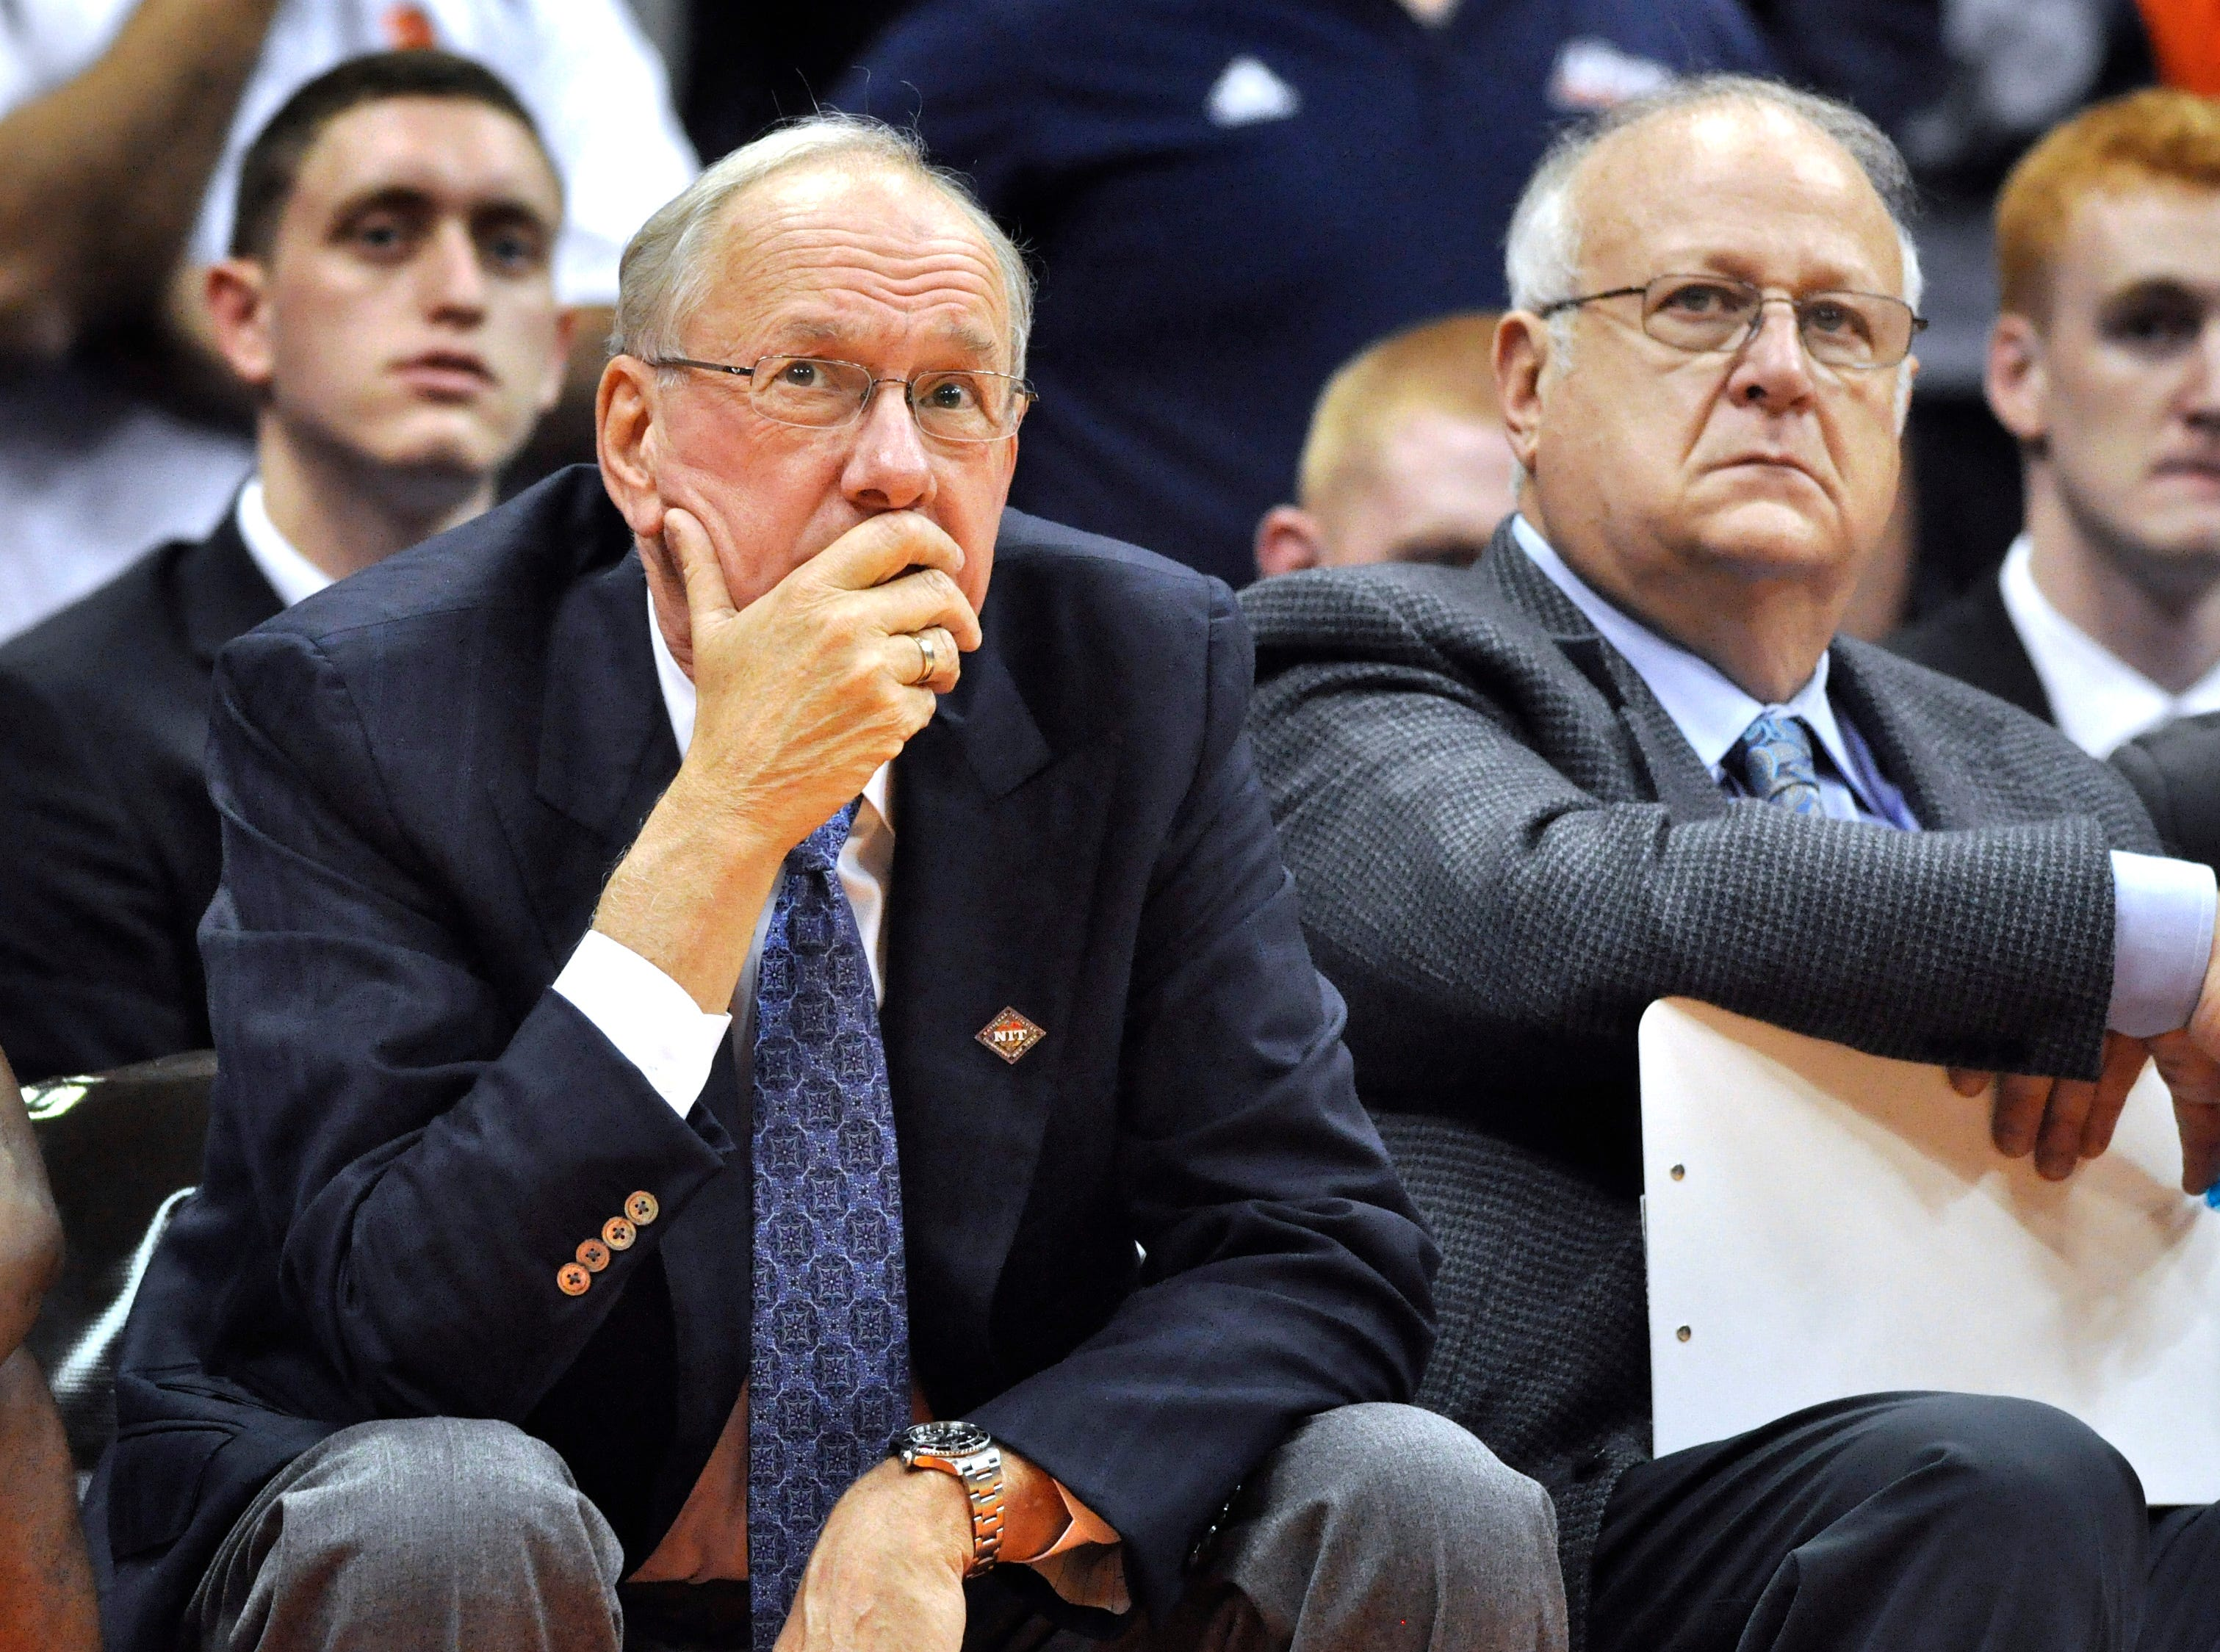 2011: Syracuse basketball coach Jim Boeheim, left, watches the action with assistant coach Bernie Fine,  during a college basketball game against Manhattan in the NIT Season Tip-Off in Syracuse, N.Y. Federal authorities have dropped their investigation into sexual abuse claims that cost a Syracuse University assistant basketball coach his job, threw a top-ranked team into turmoil and threatened the career of Hall of Fame coach Boeheim. After a probe spanning nearly a year, U.S. Attorney Richard Hartunian said Friday, Nov. 9, 2012 there was no evidence to support claims that Bernie Fine had molested a boy in 2002 in a Pittsburgh hotel room.  (AP Photo/Kevin Rivoli, File)